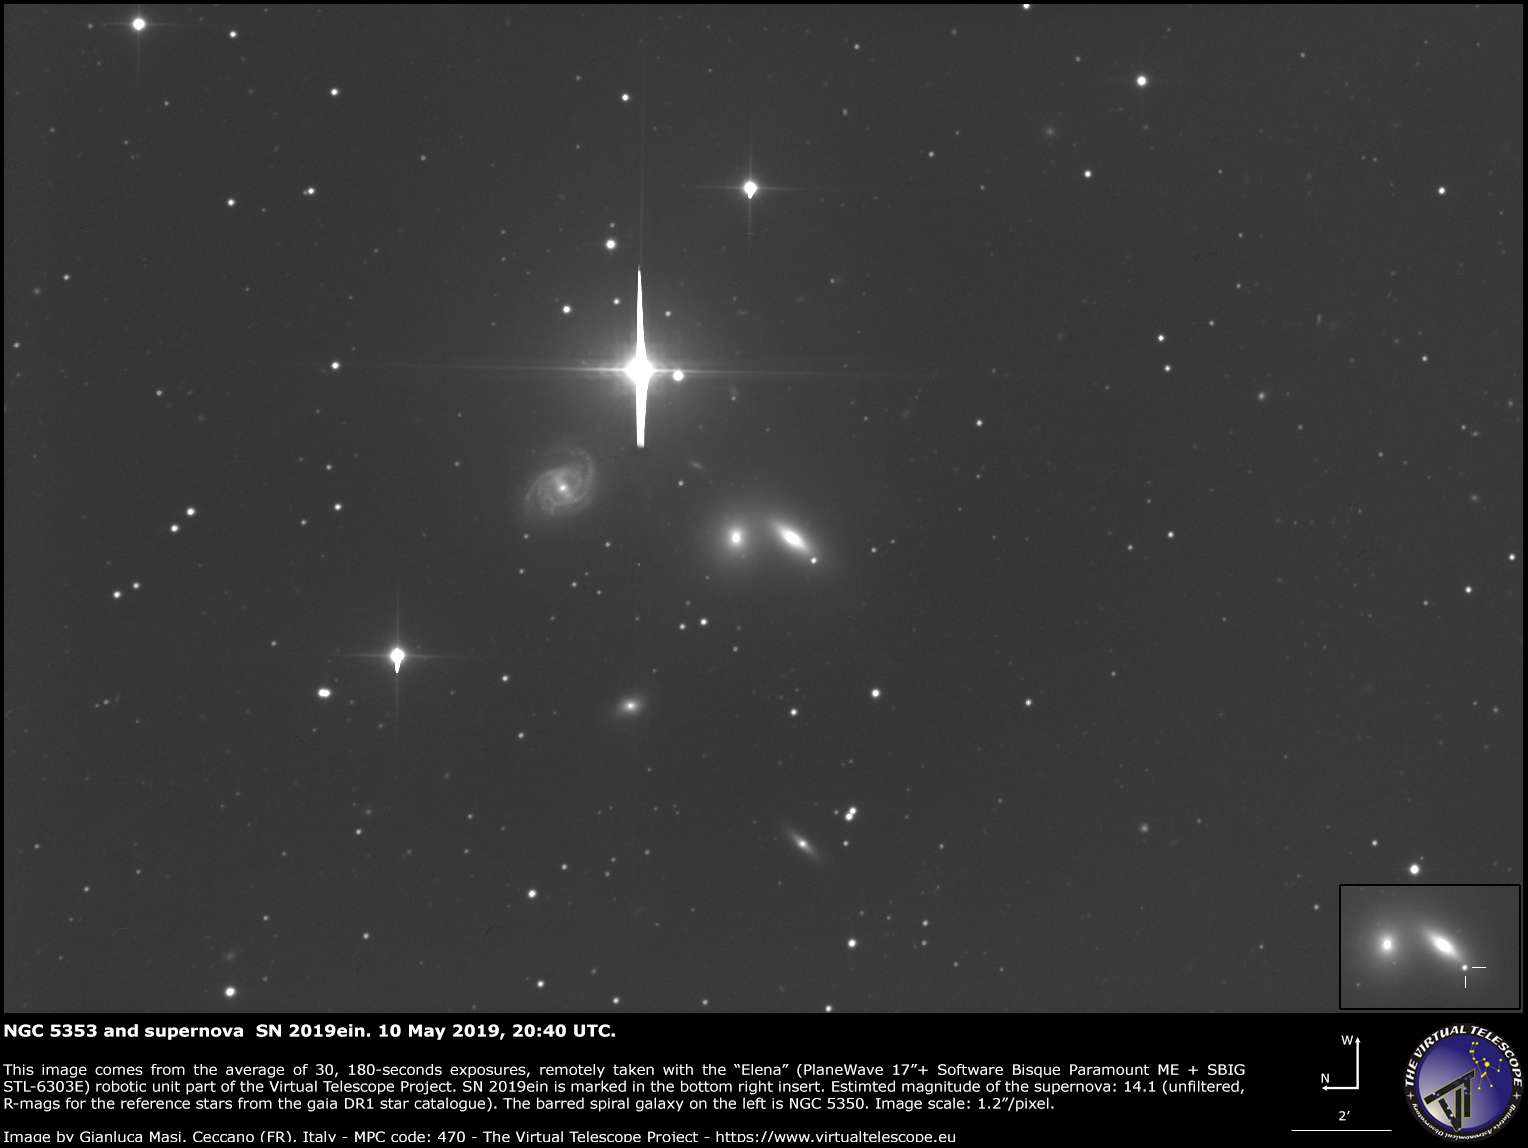 Supernova SN 2019ein in NGC 5353. 10 May 2019.